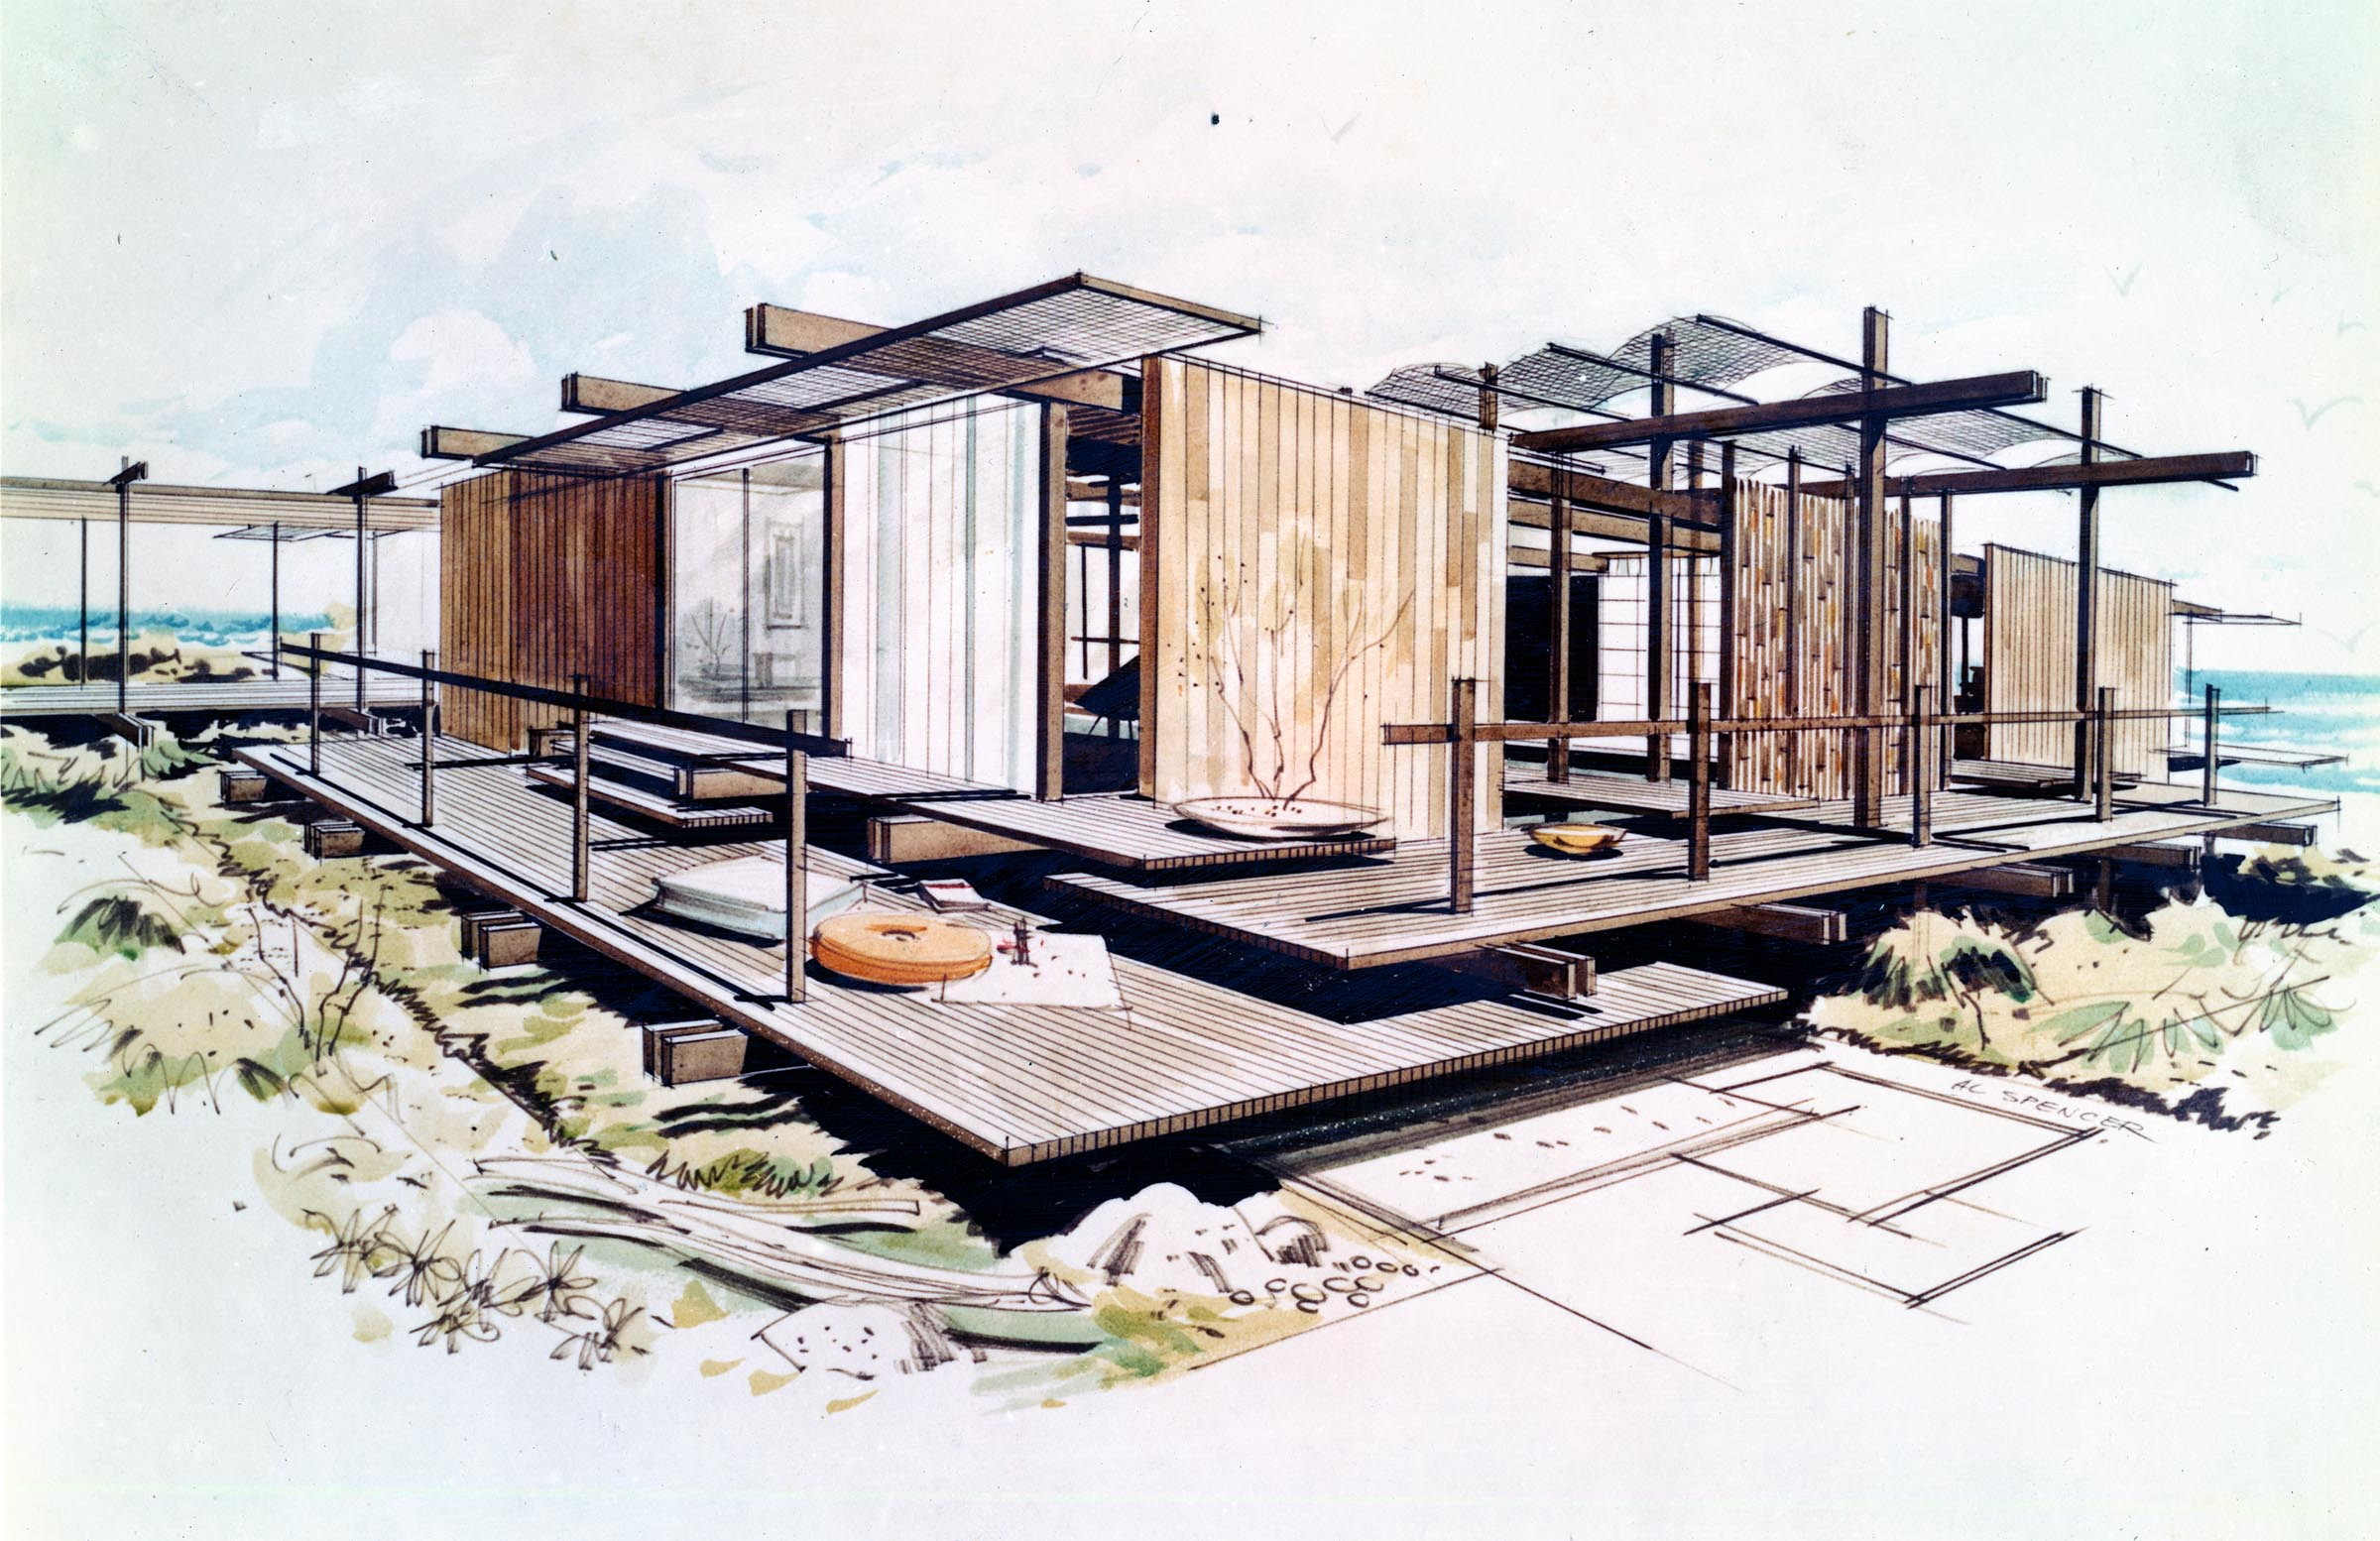 Shoreline House for Orange County Home Show, 1957